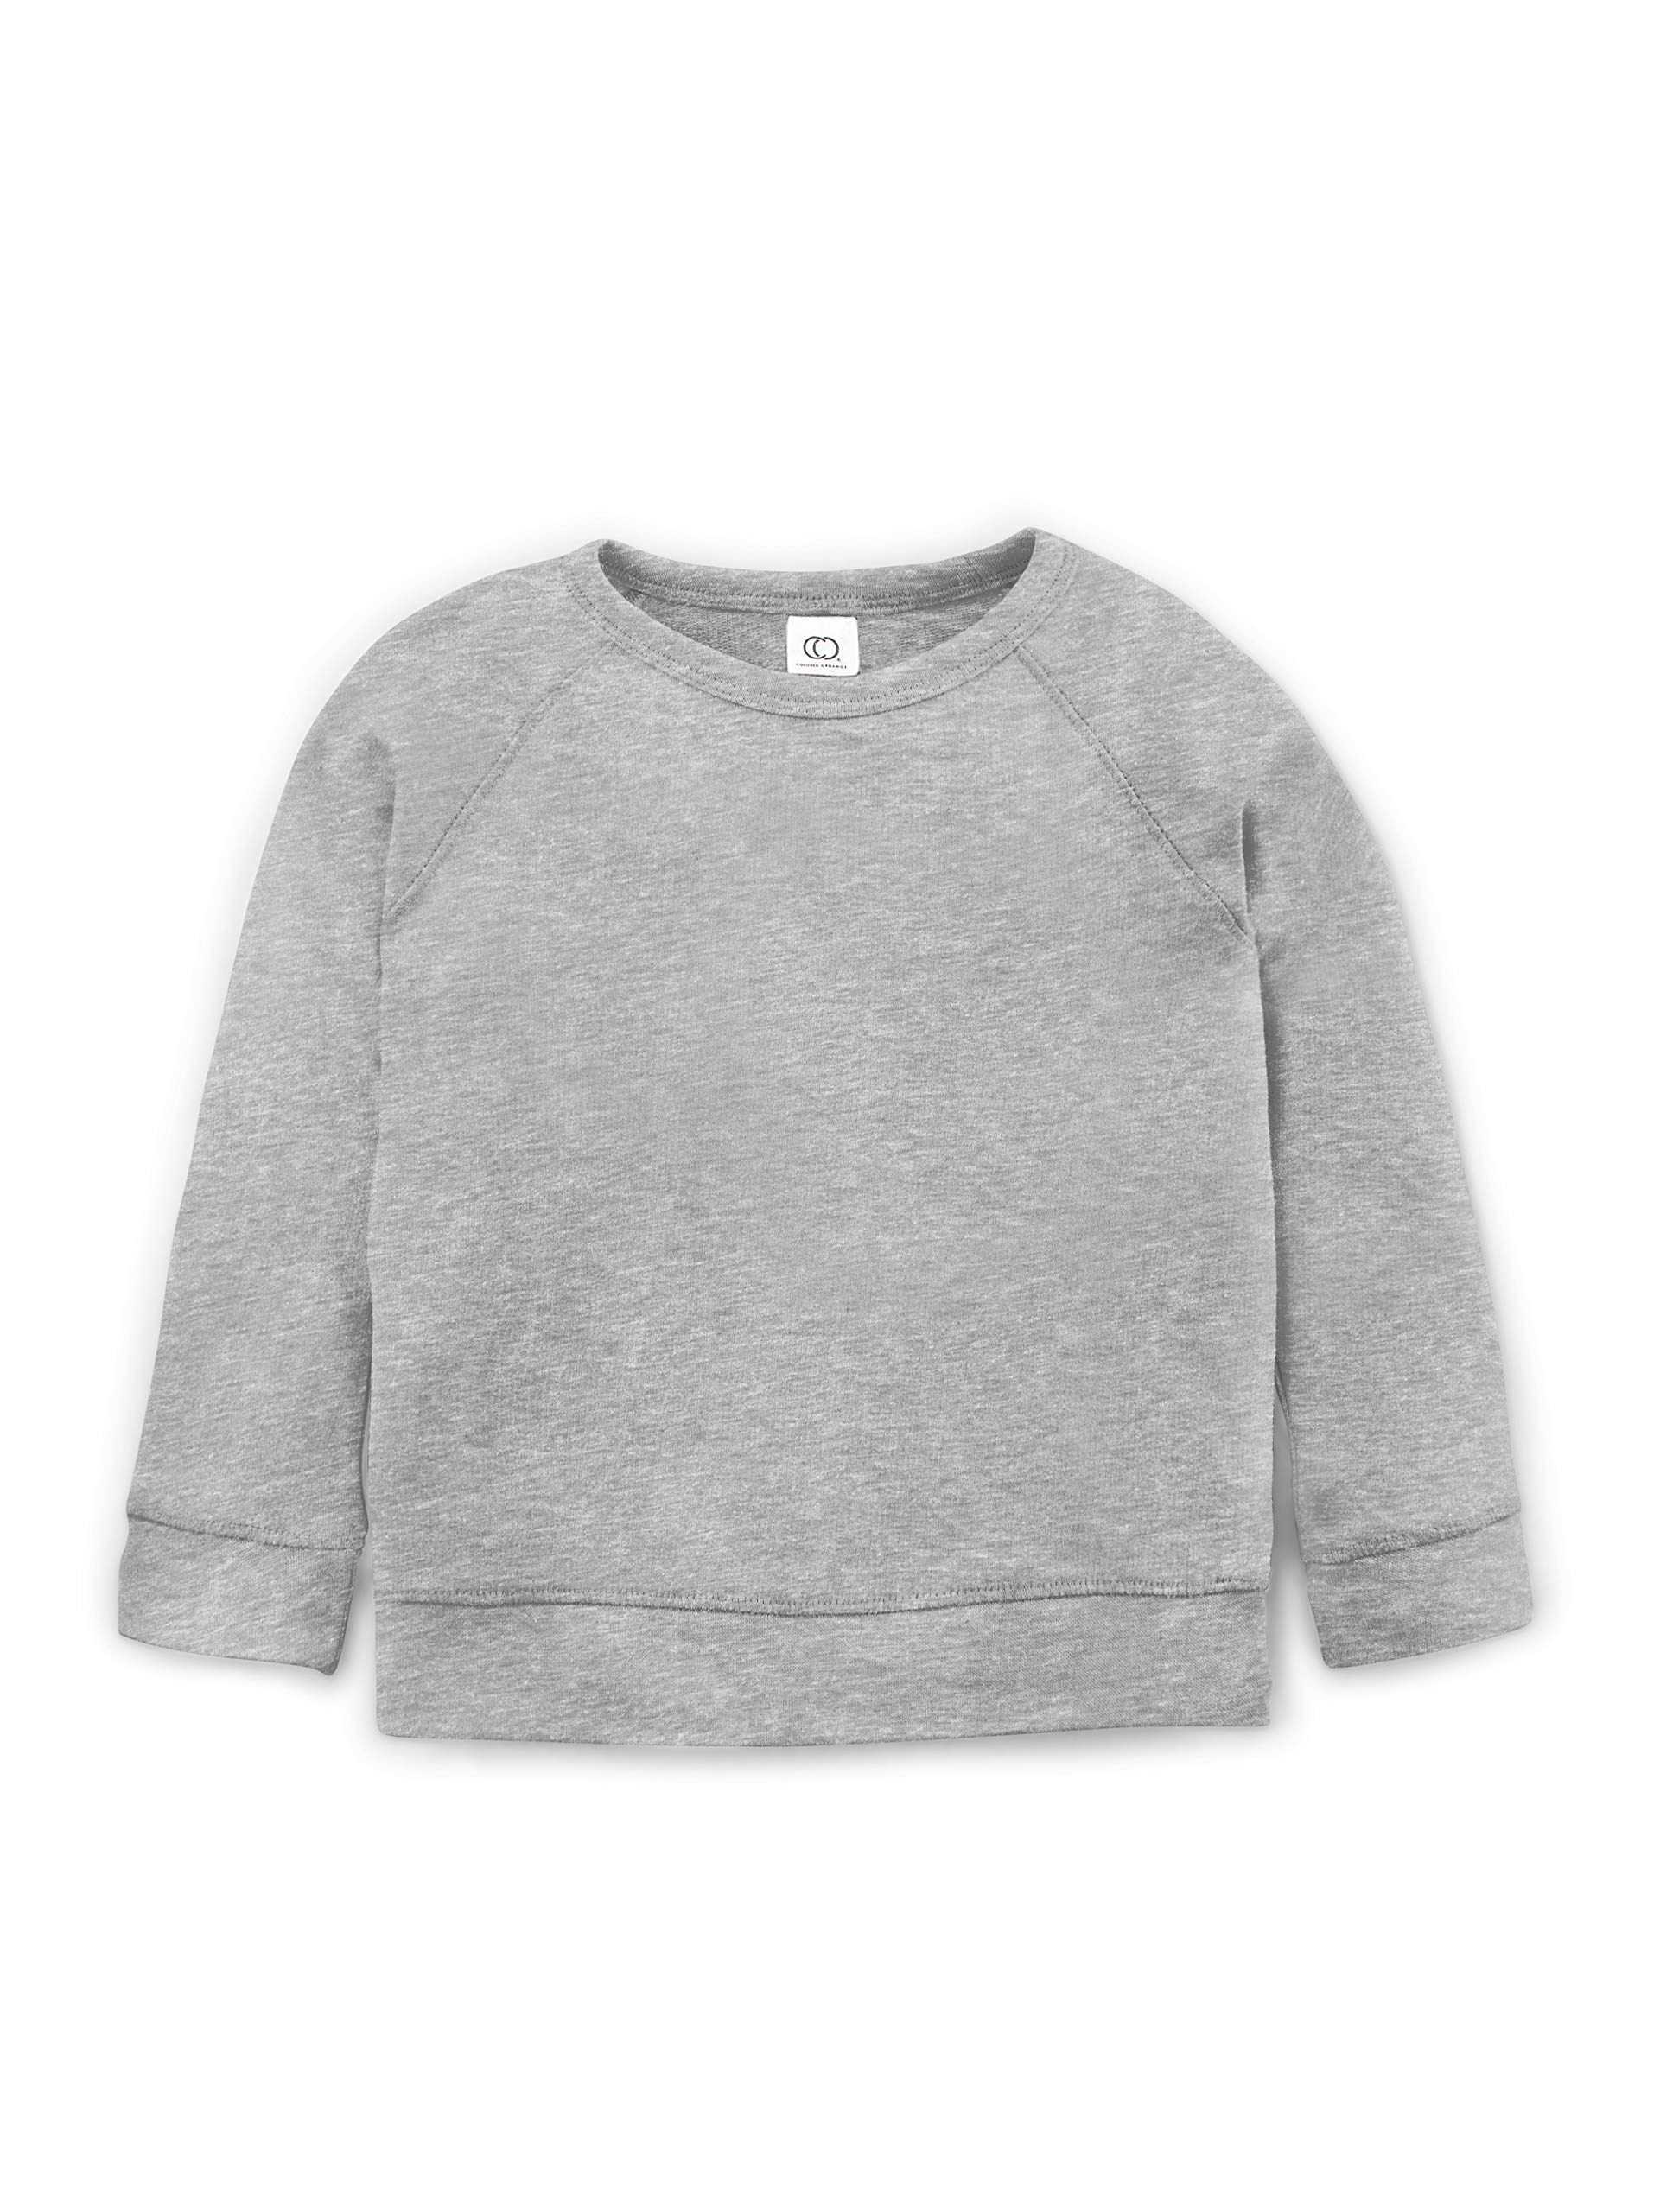 Colored Organics Long Sleeve Organic Cotton Pullover for Toddlers & Kids - Heather Grey - 2T